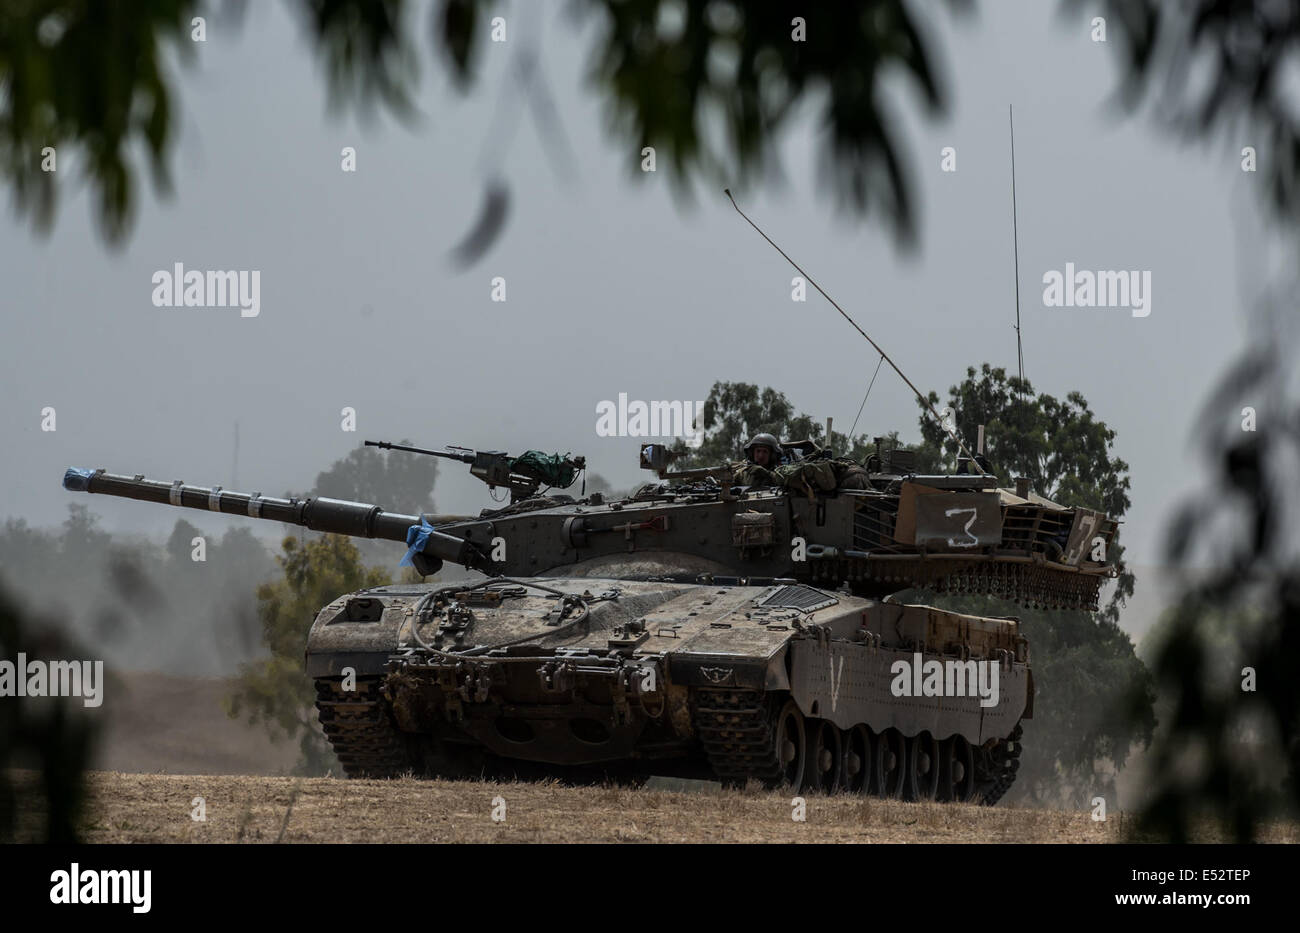 Gaza Border. 18th July, 2014. An Israeli Markava tank waits for orders in the field in southern Israel near the - Stock Image